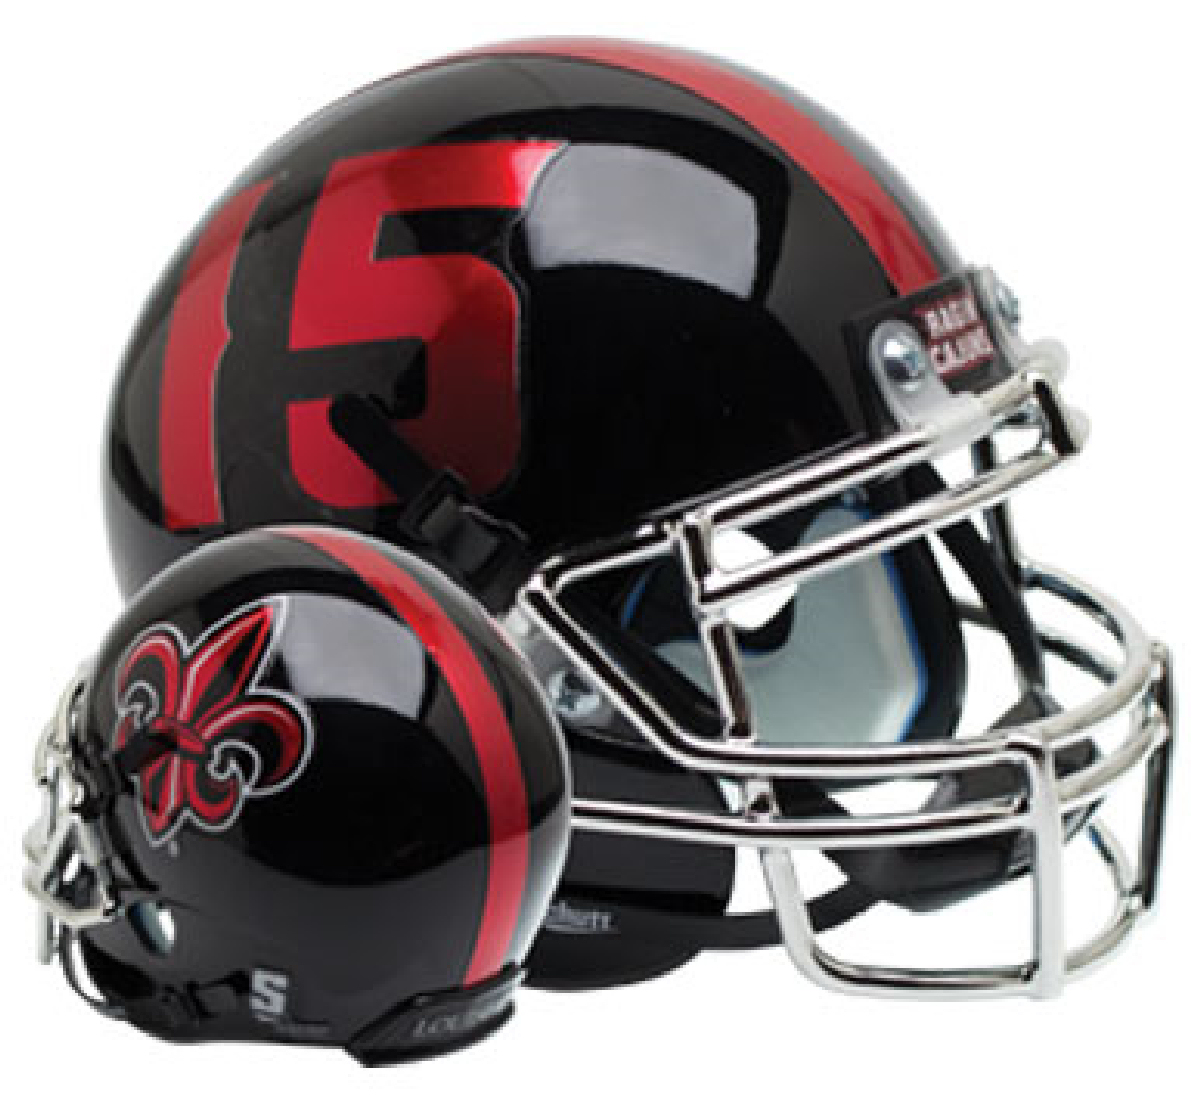 Louisiana (Lafayette) Ragin Cajuns Authentic College XP Football Helmet Schutt <B>Black with Chrome Mask</B>